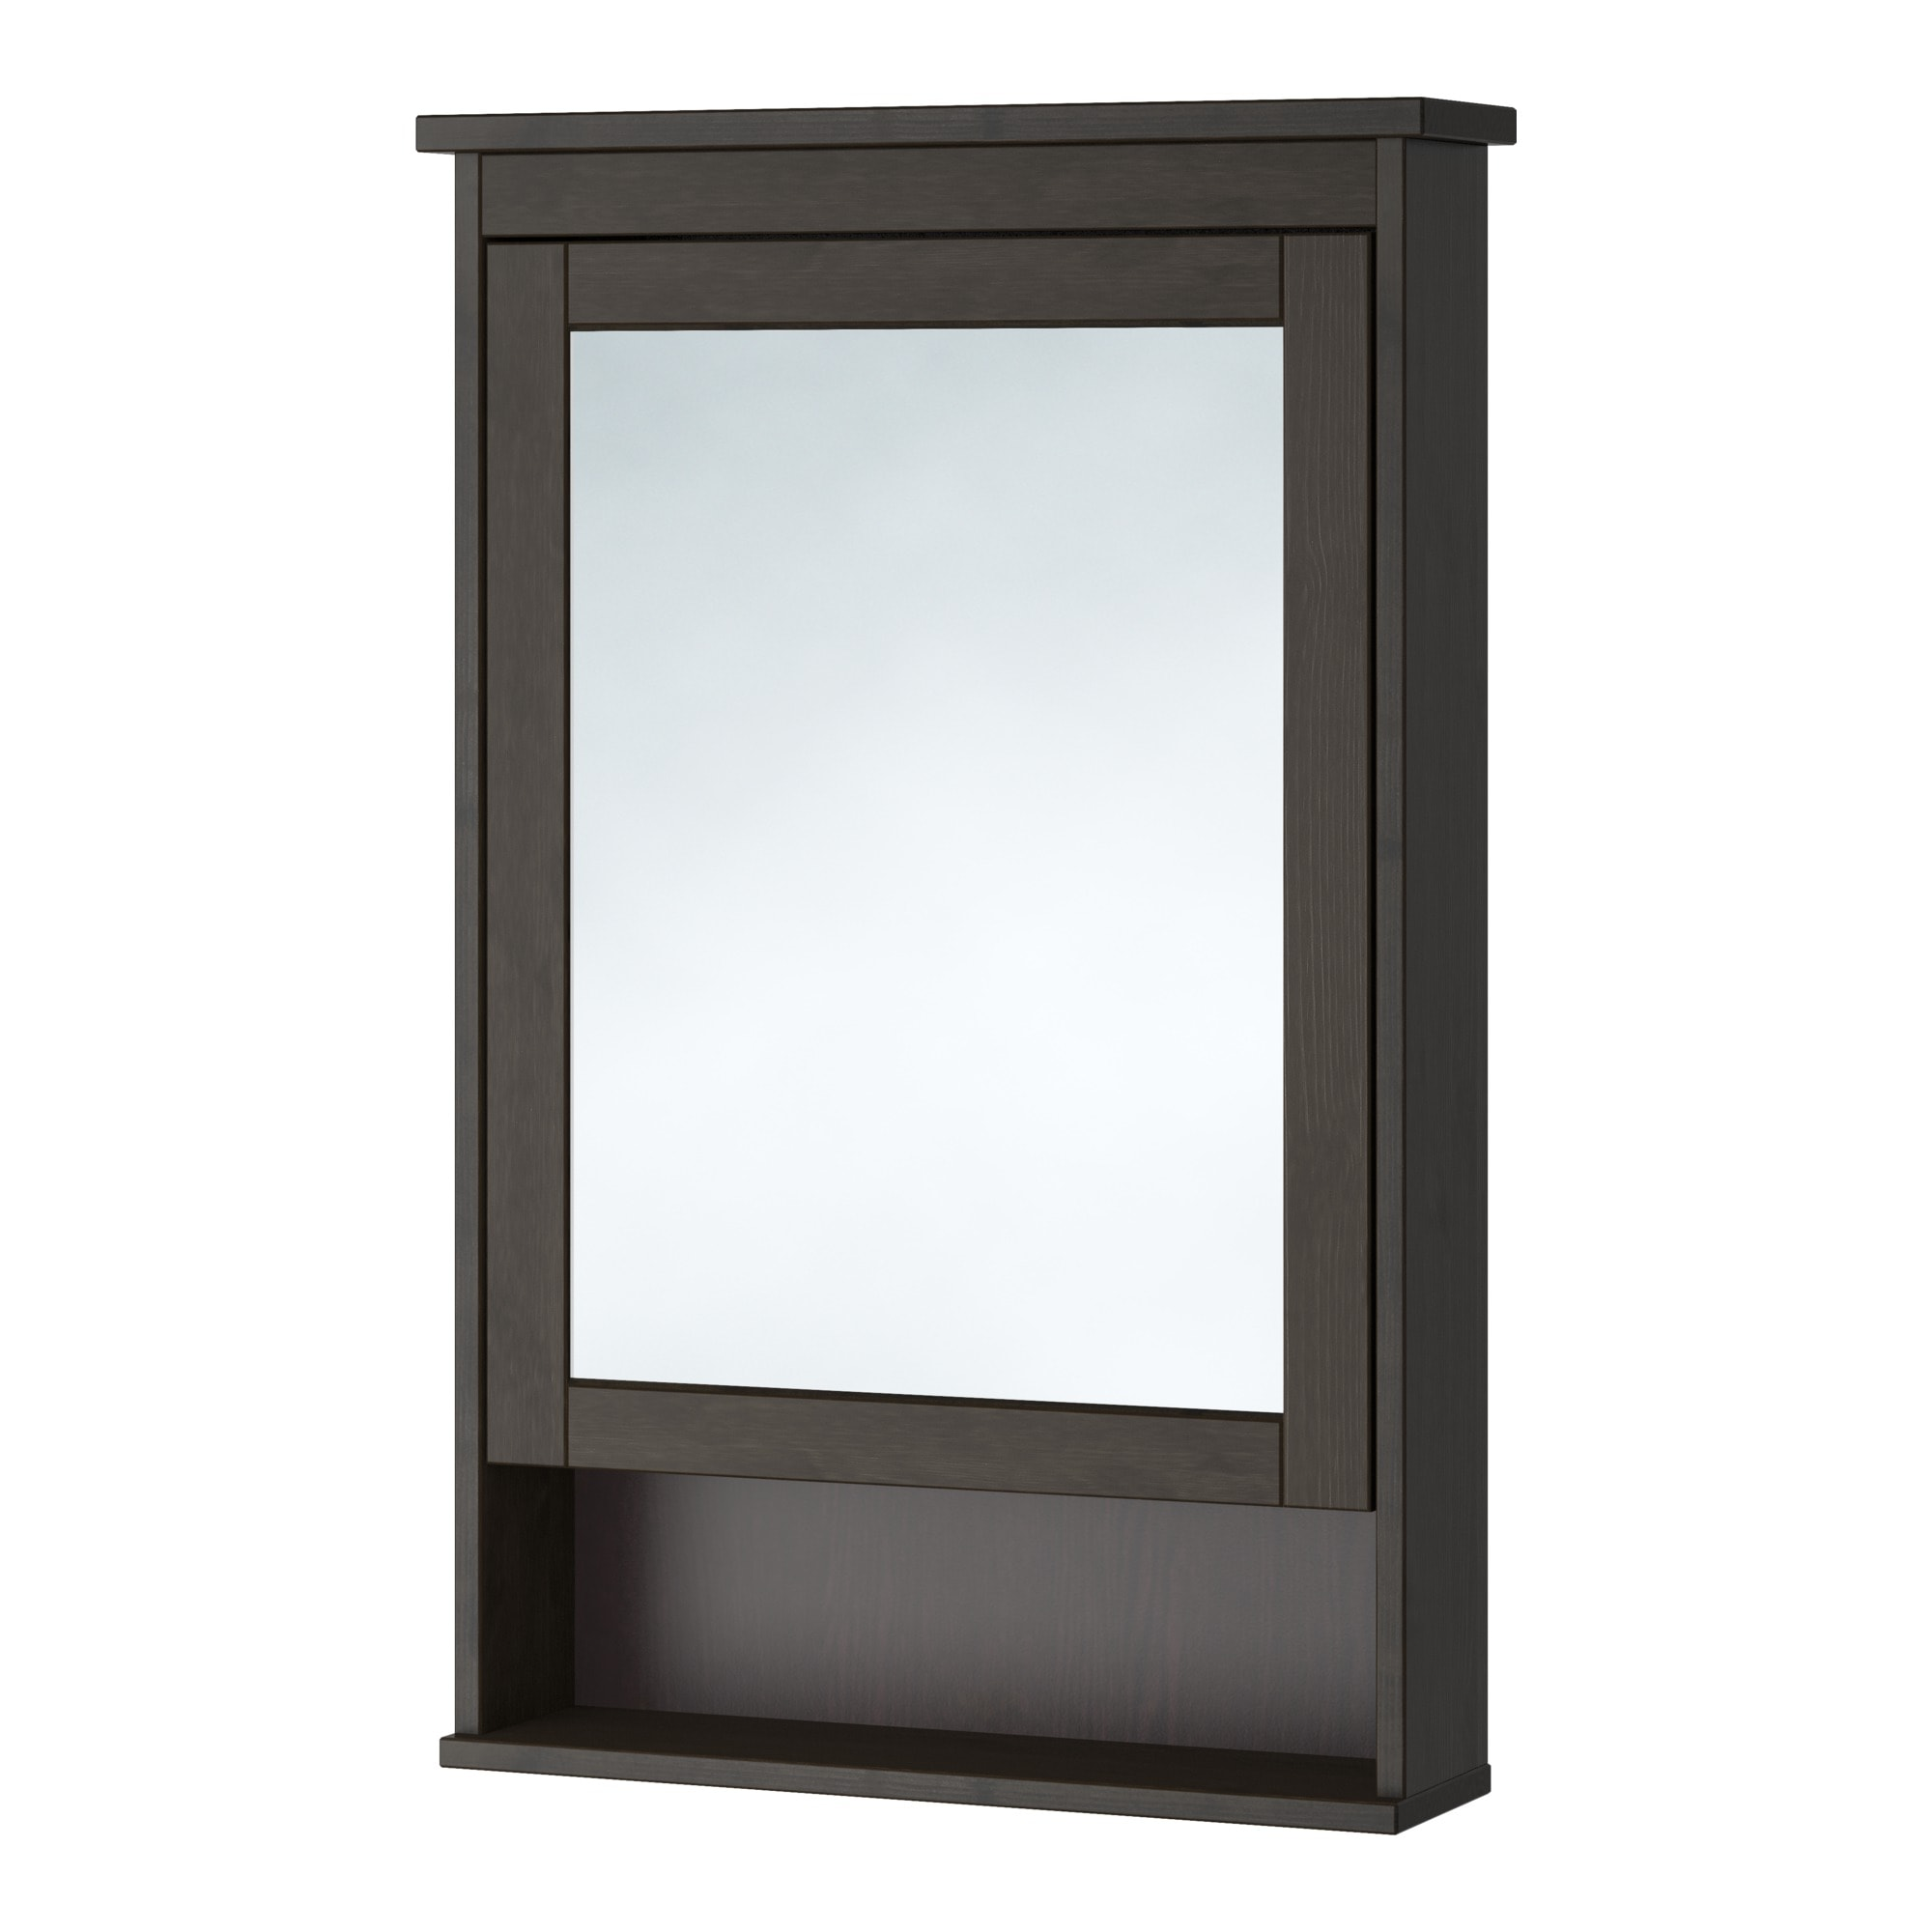 HEMNES Mirror Cabinet With 1 Door, Black Brown Stain Width: 24 3/